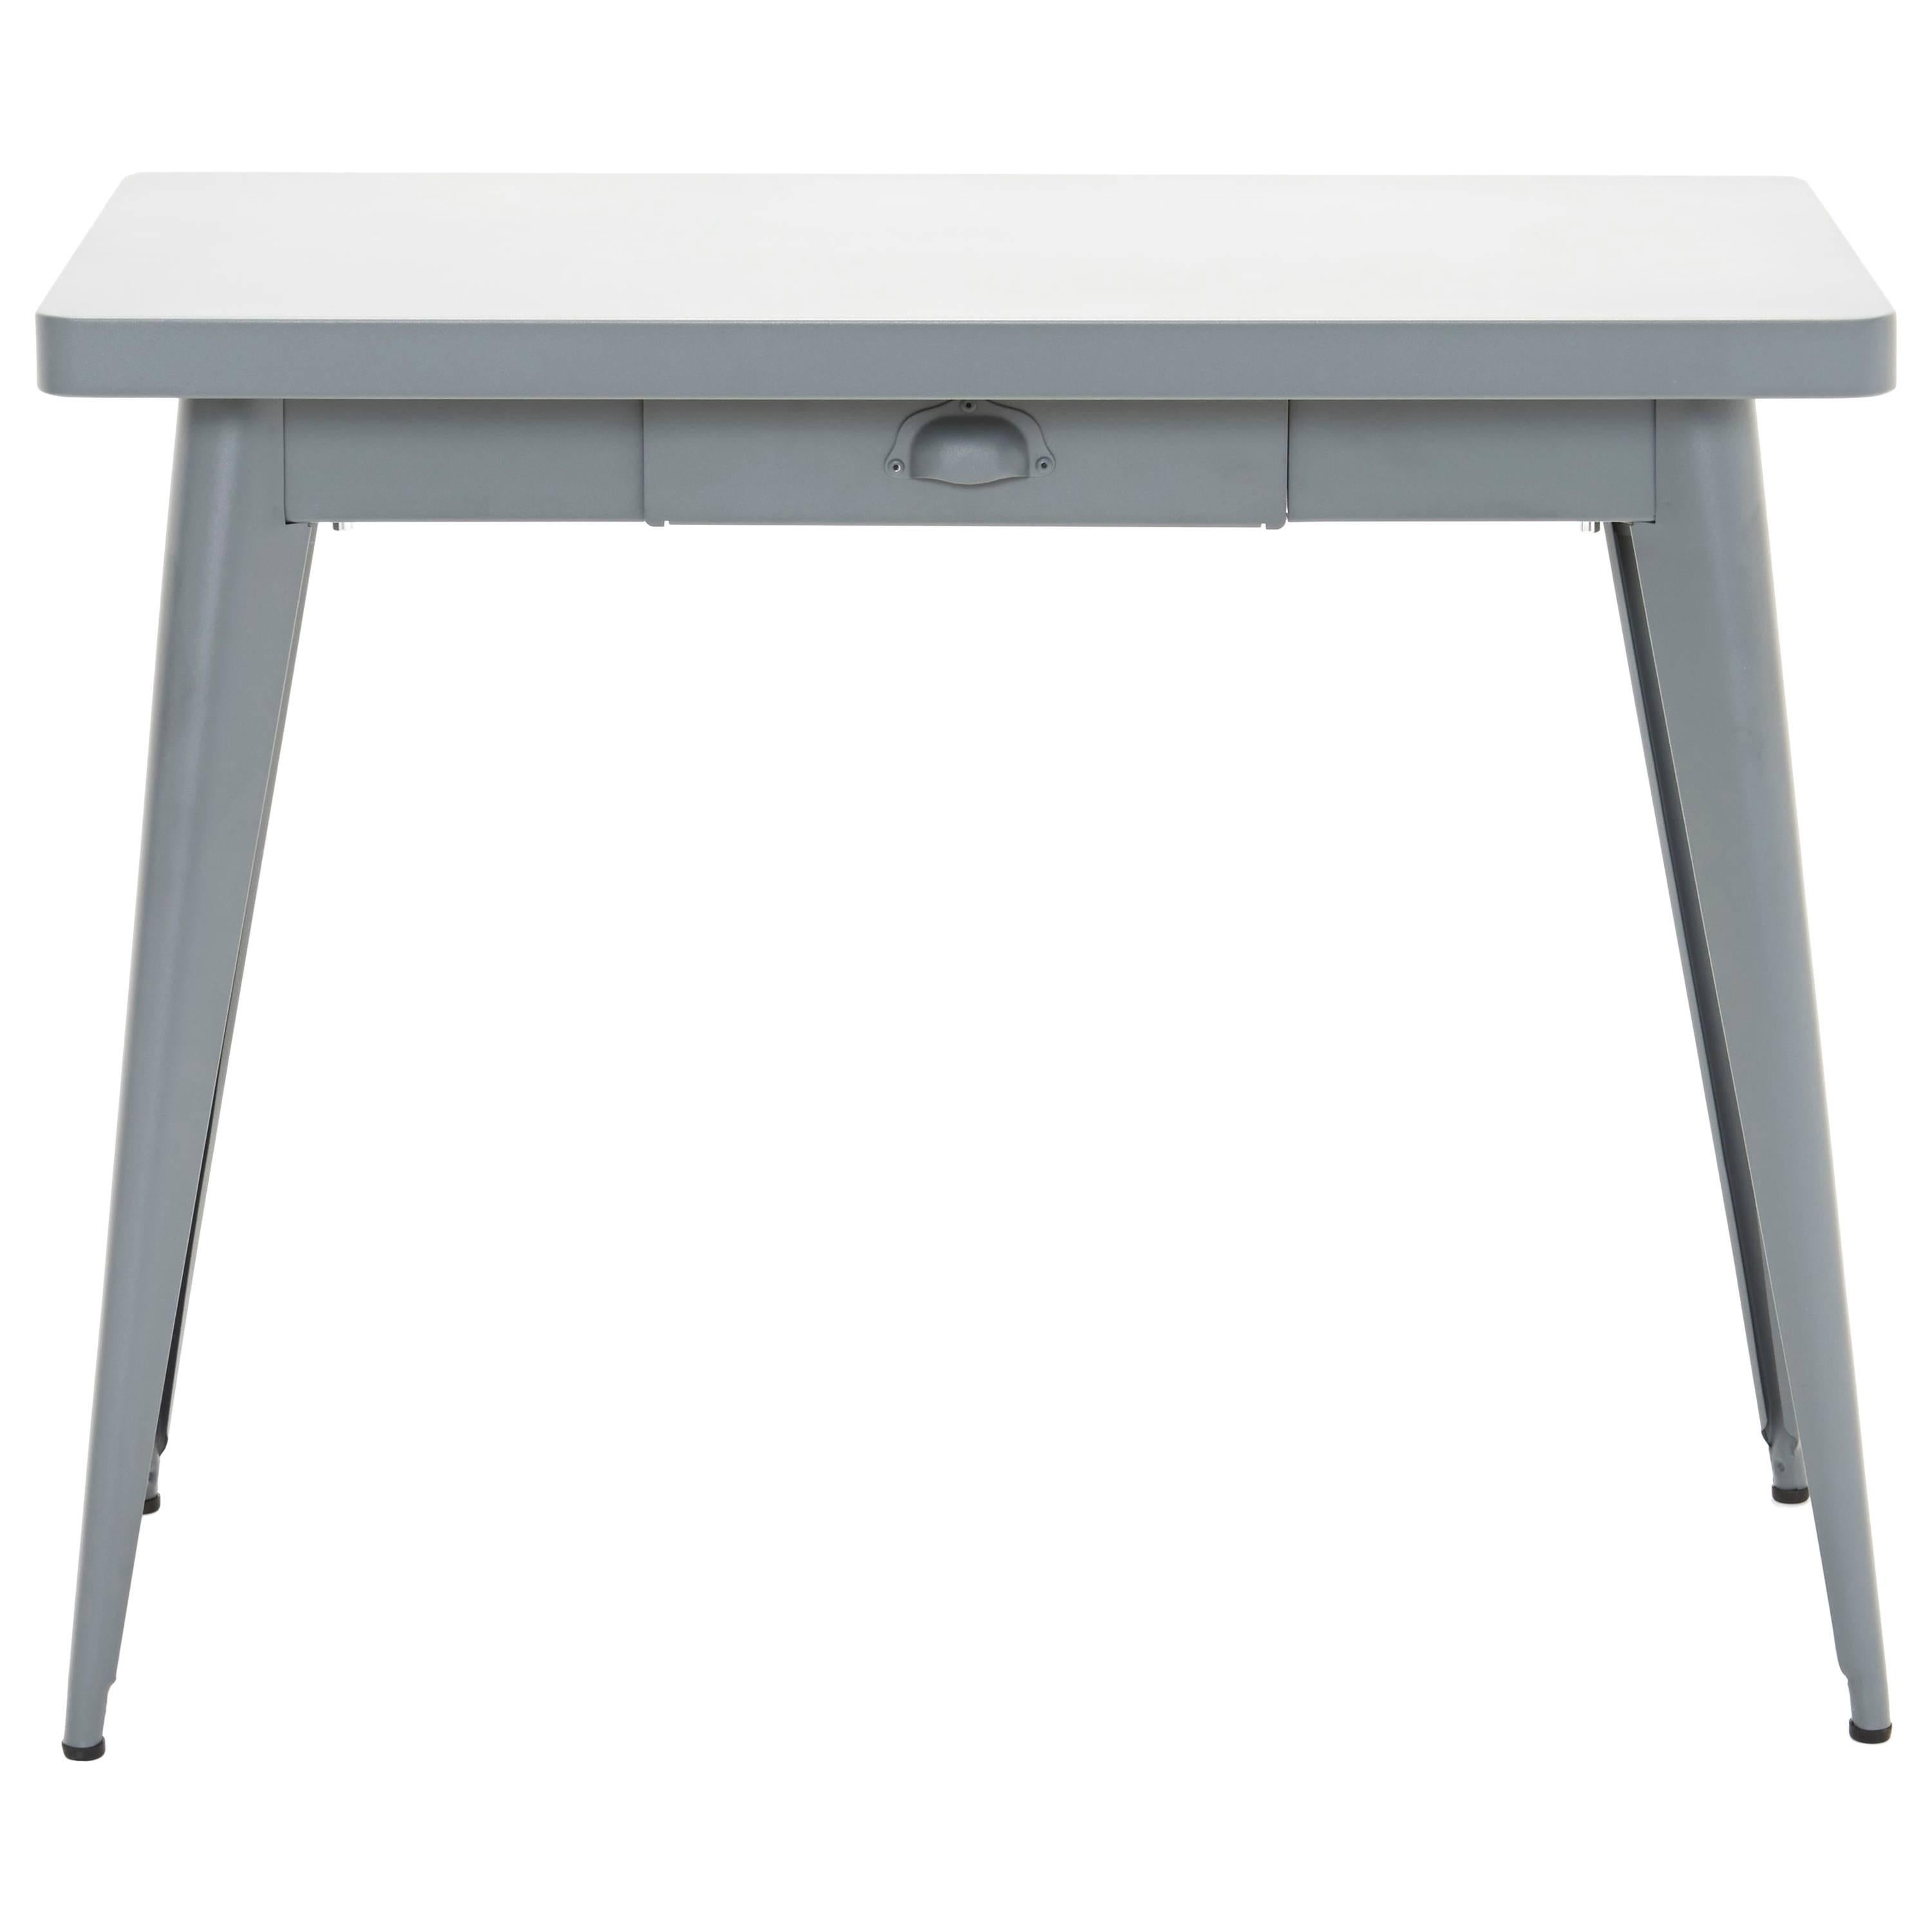 55 Console Table with Drawer in Grey by Jean Pauchard & Tolix